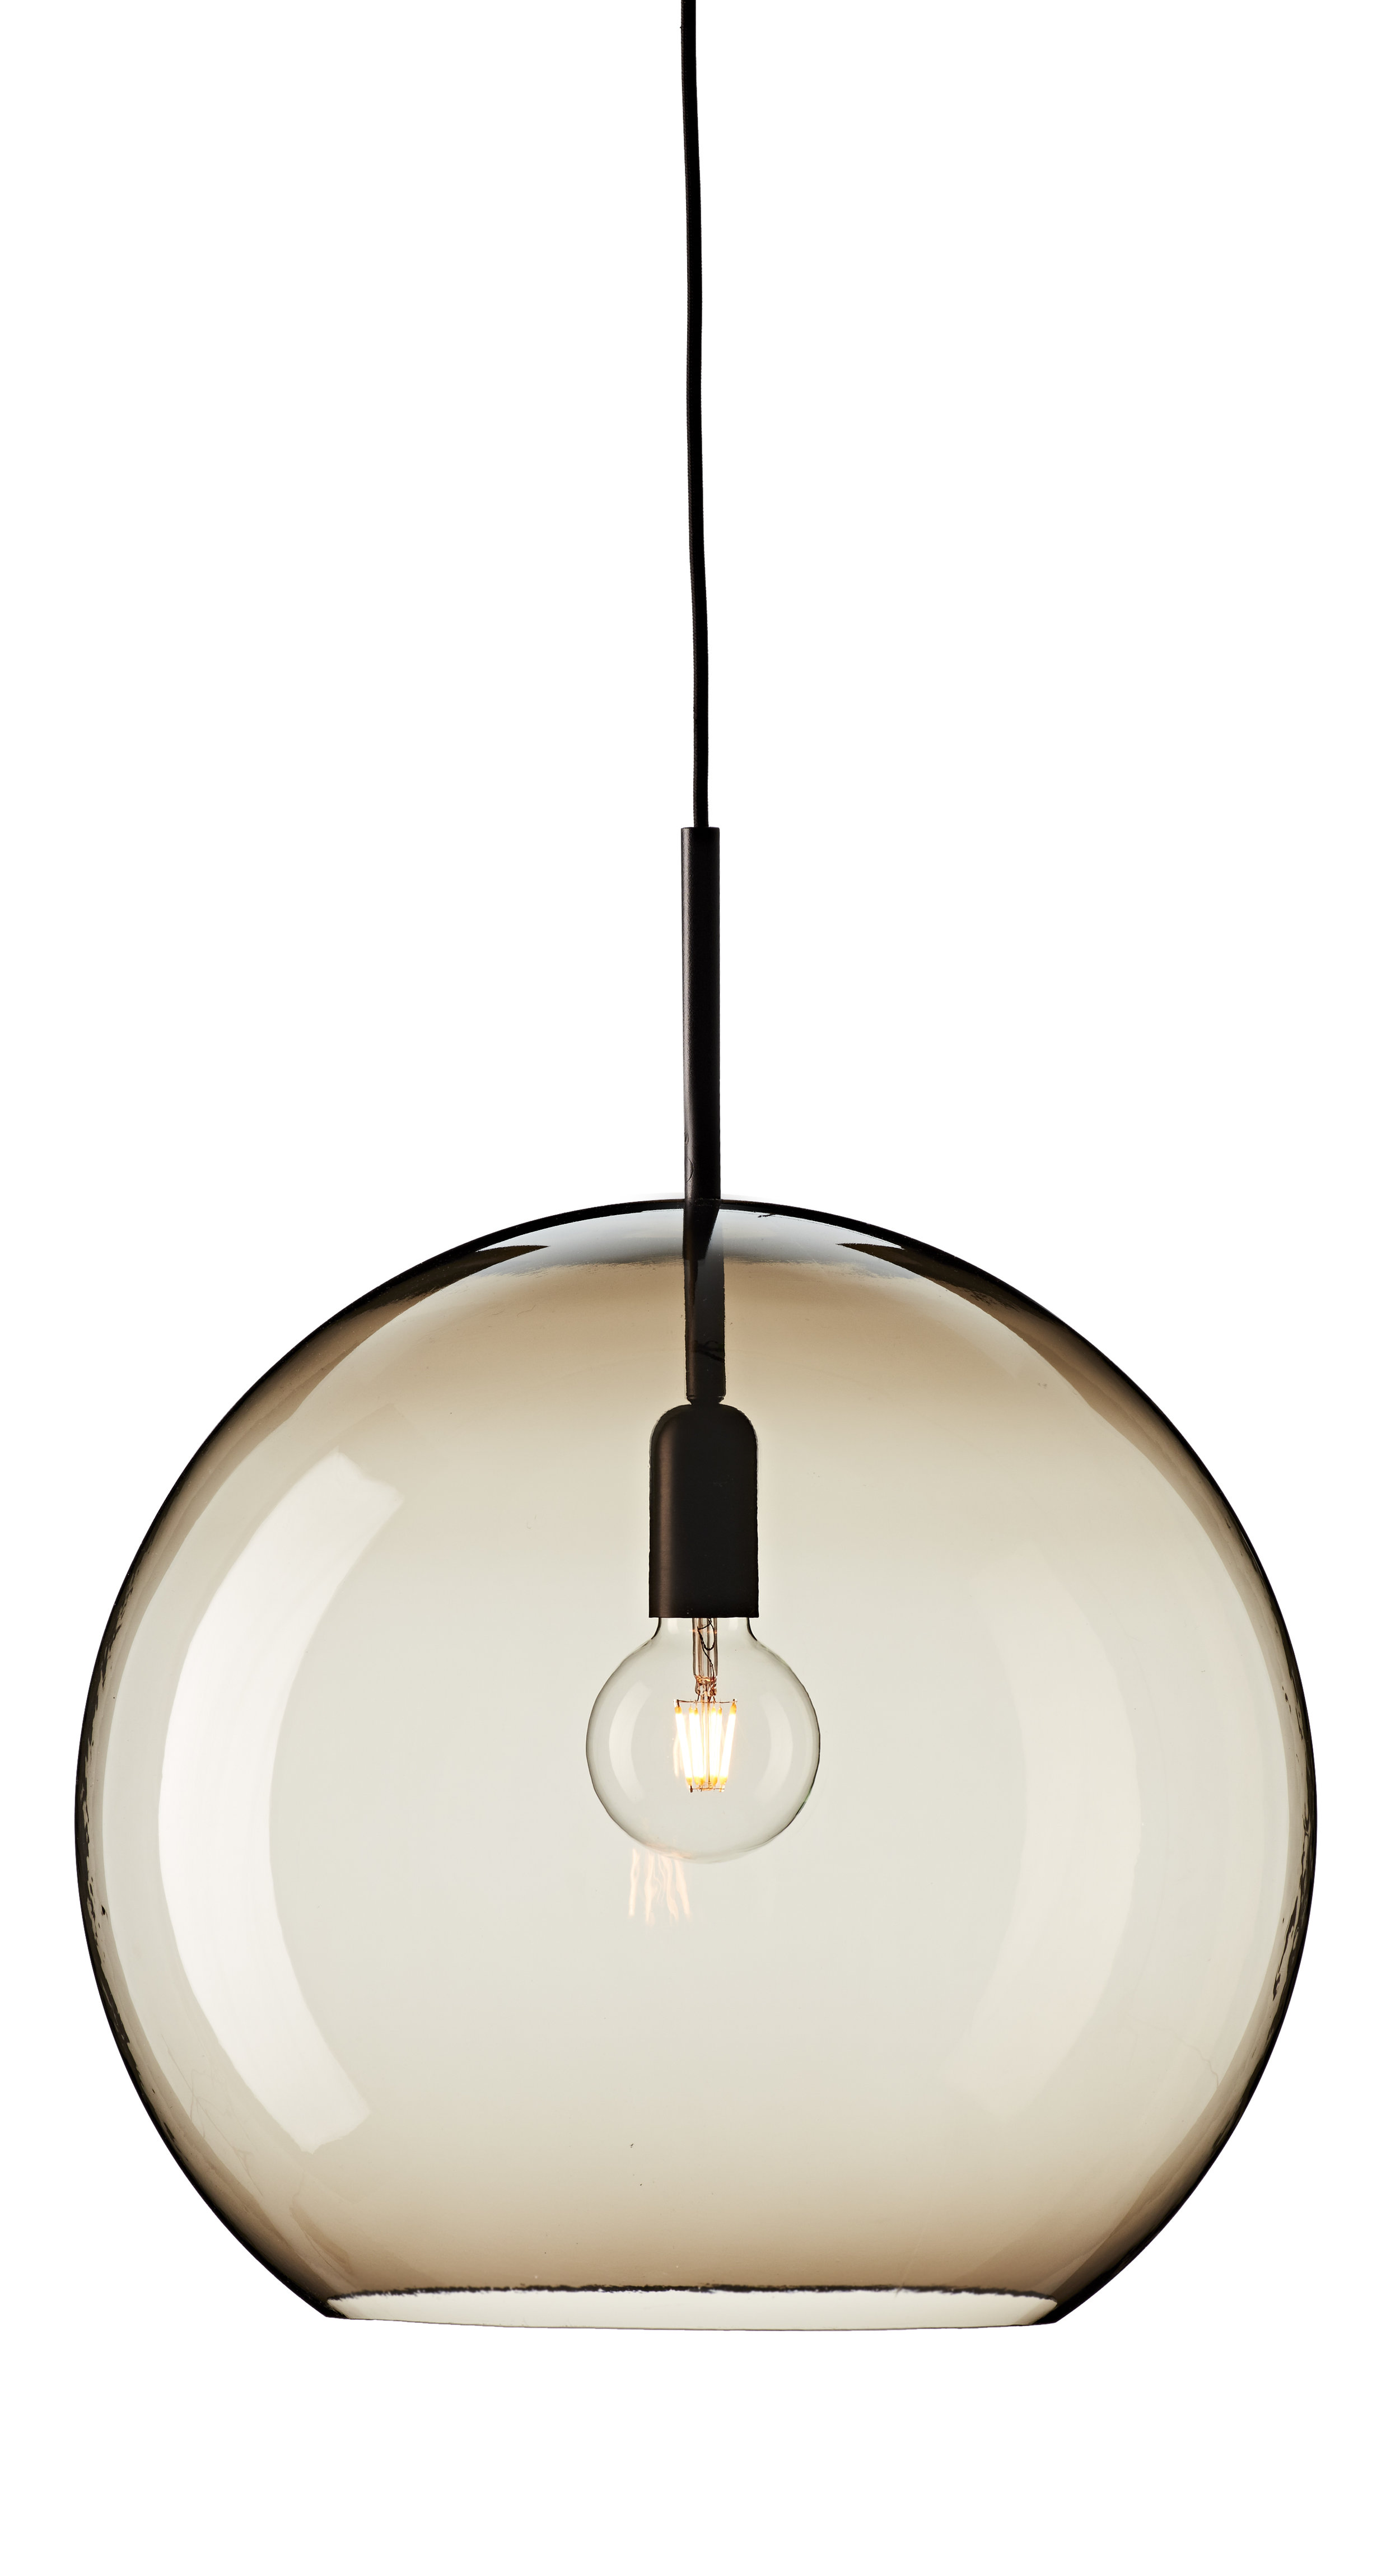 ISM Objects_Pop 500 Pendant_Smokey_01.jpg